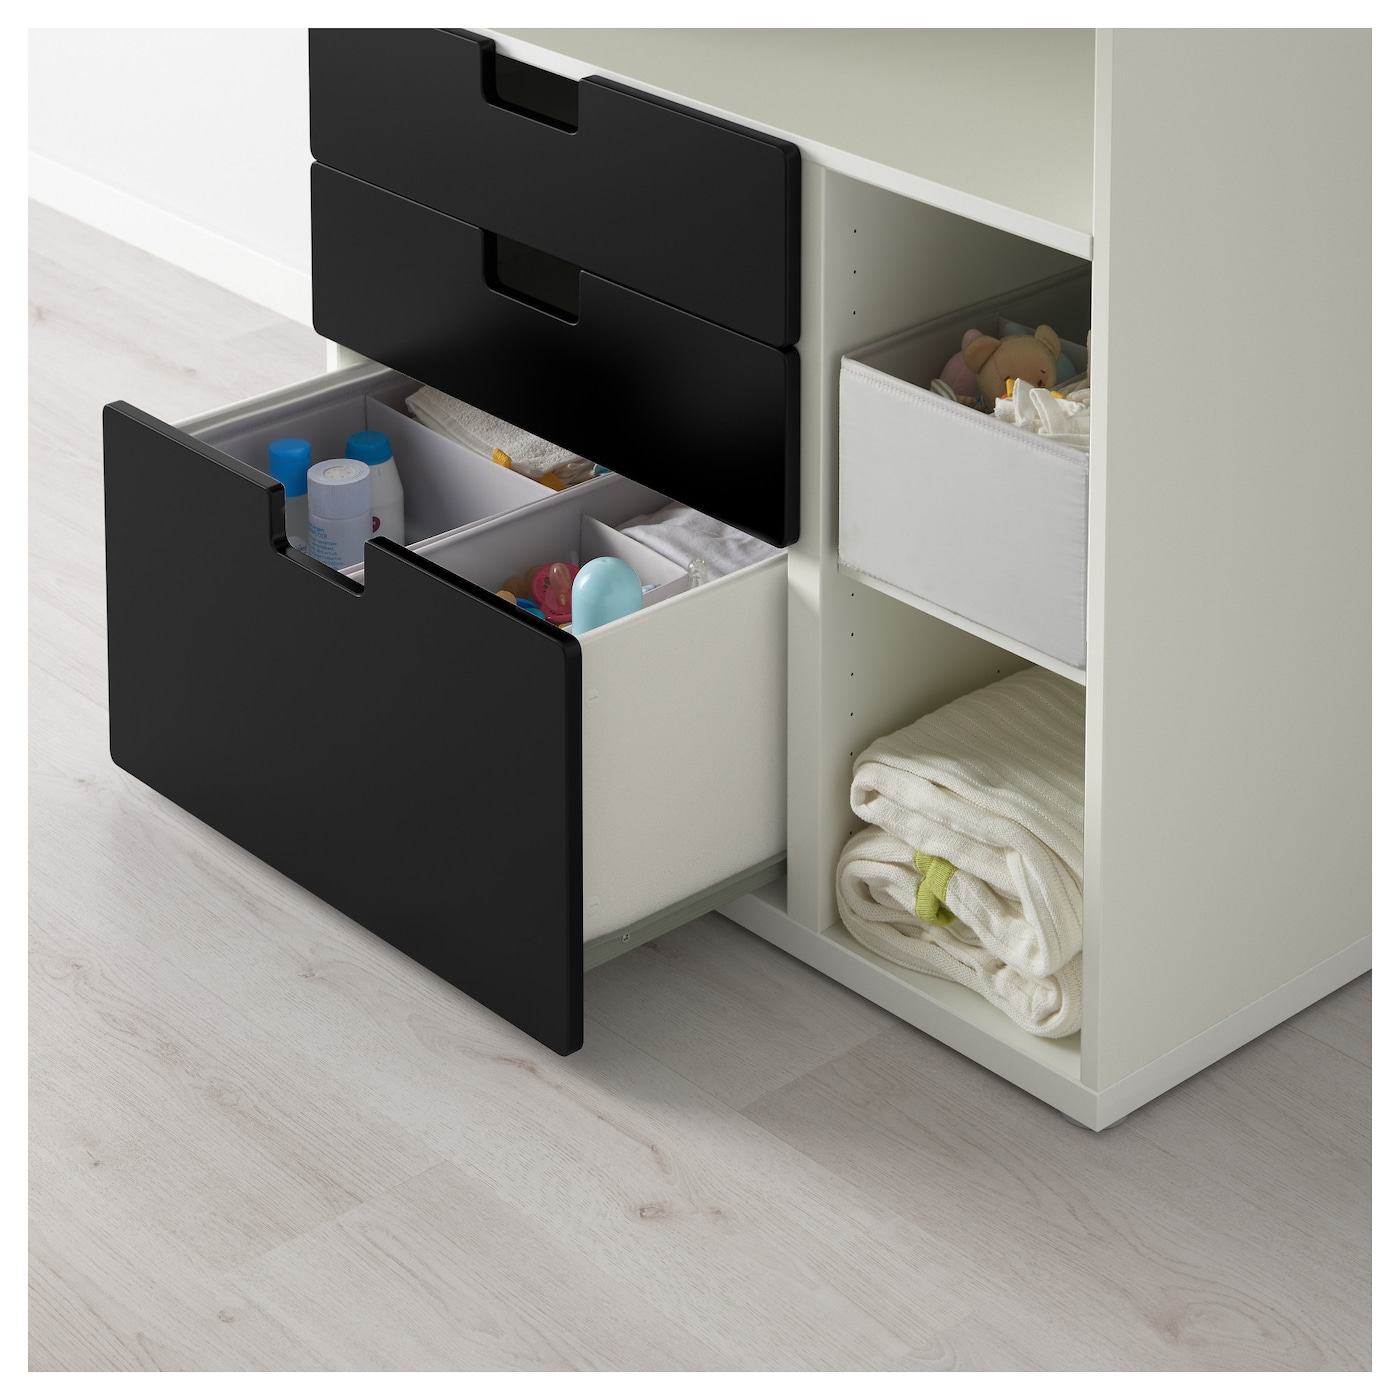 Ikea Pax Schrank Planer Schweiz ~ STUVA Changing table with 3 drawers White black 90x79x102 cm  IKEA